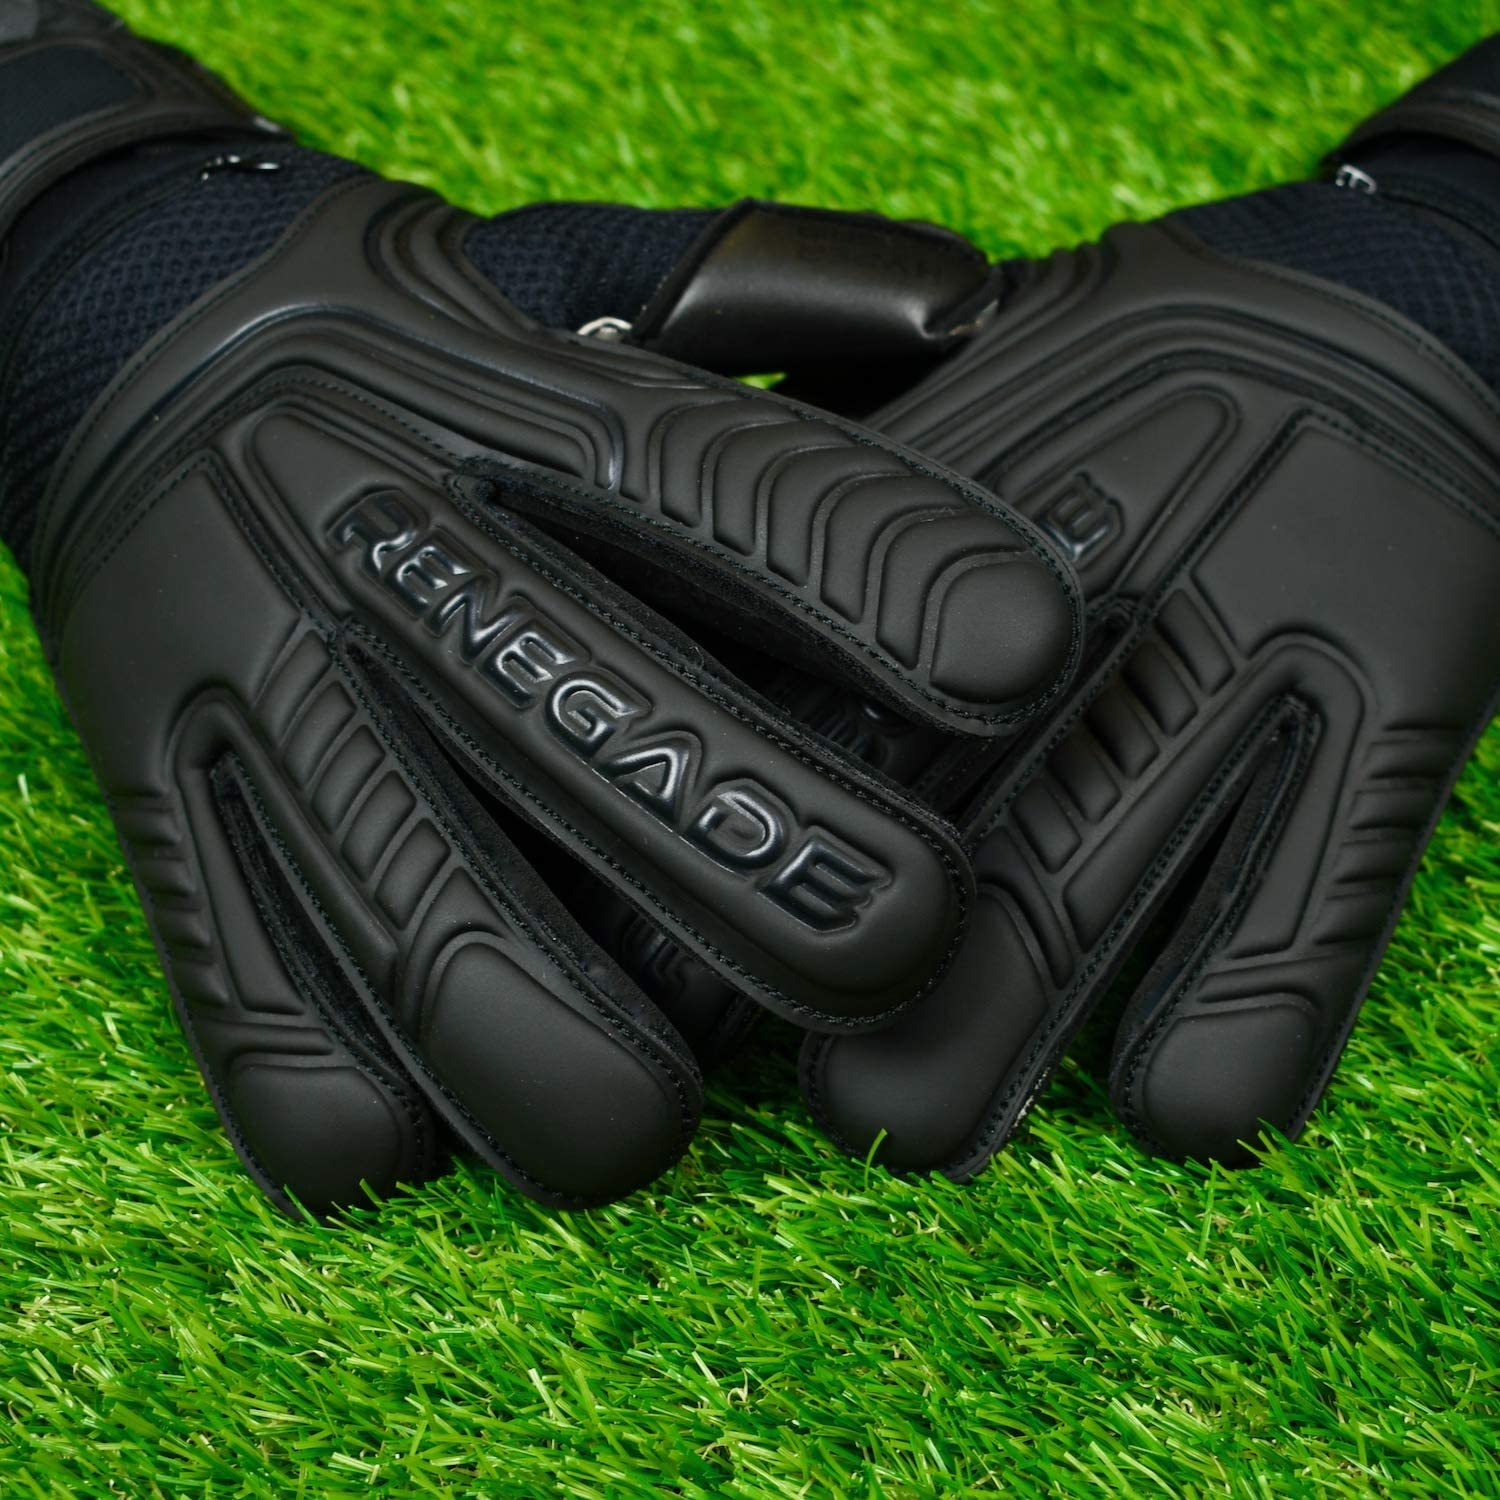 Based in The USA Sizes 6-11, 4 Styles, Level 3 Excellent Goalkeeper Glove for Higher Play Renegade GK Vulcan Goalie Gloves with Microbe-Guard Pro-Tek Fingersaves /& 3.5+3MM Hyper Grip